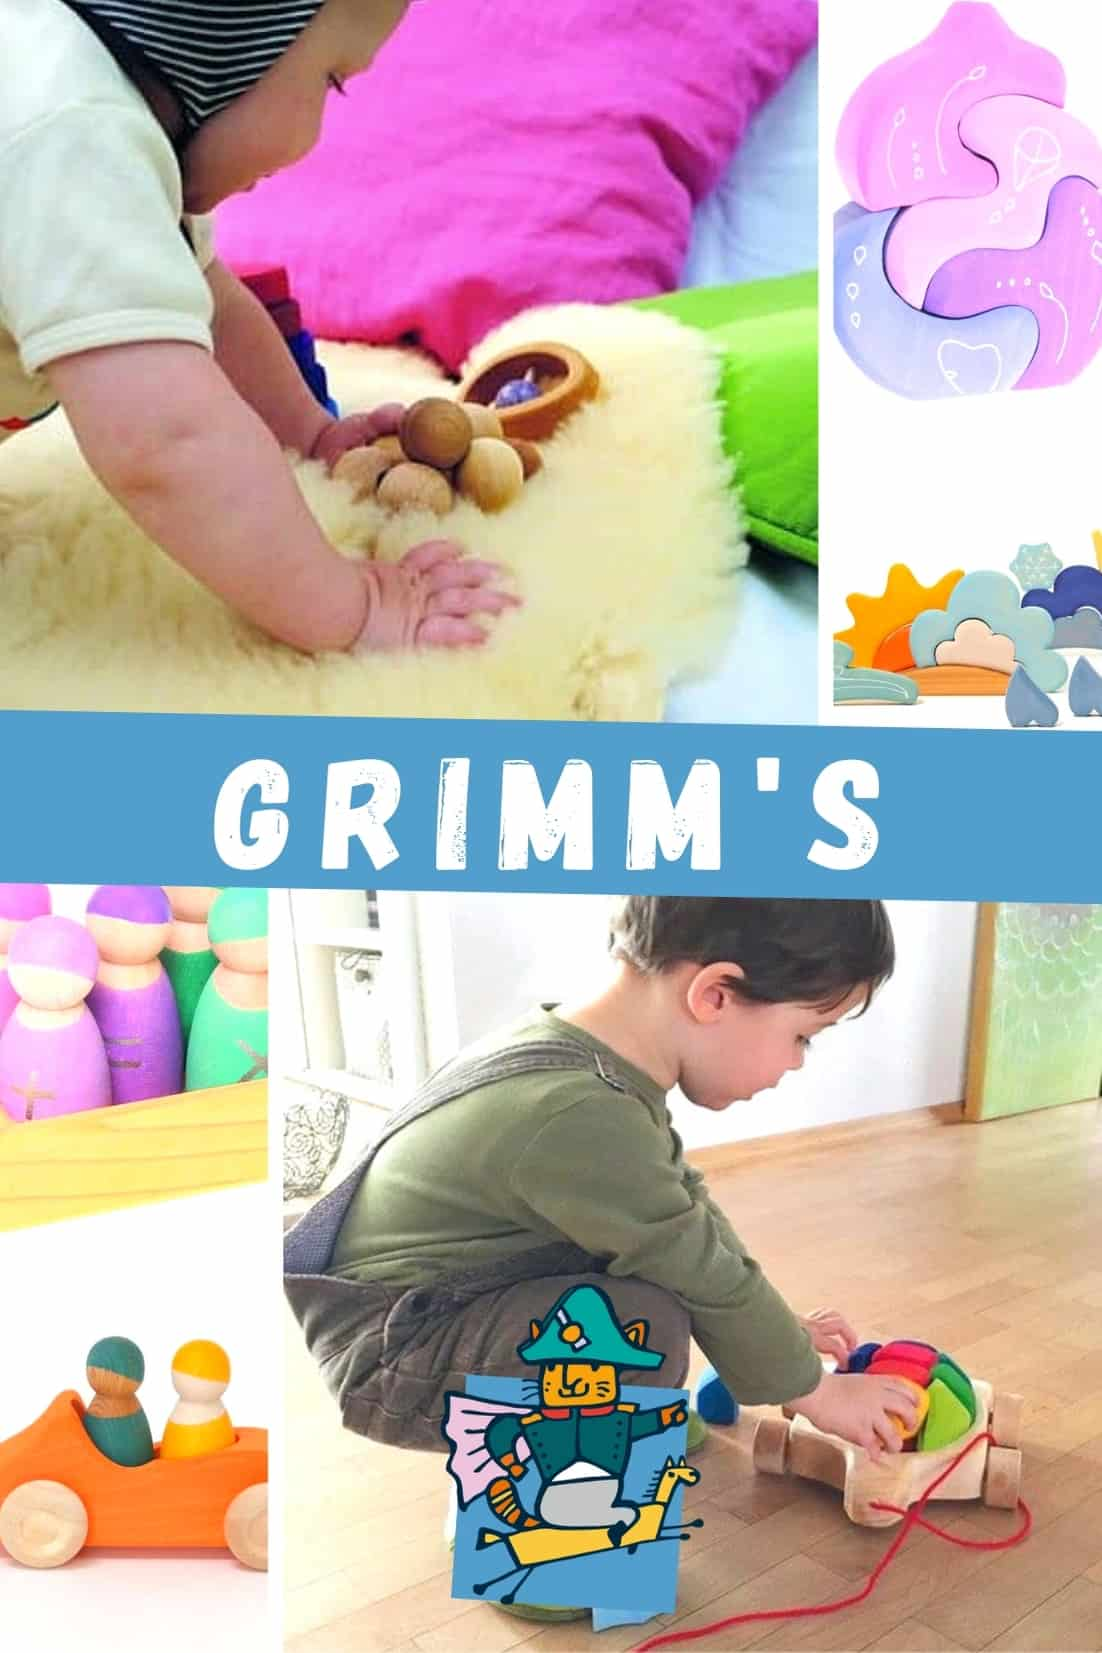 Grimms wooden toys